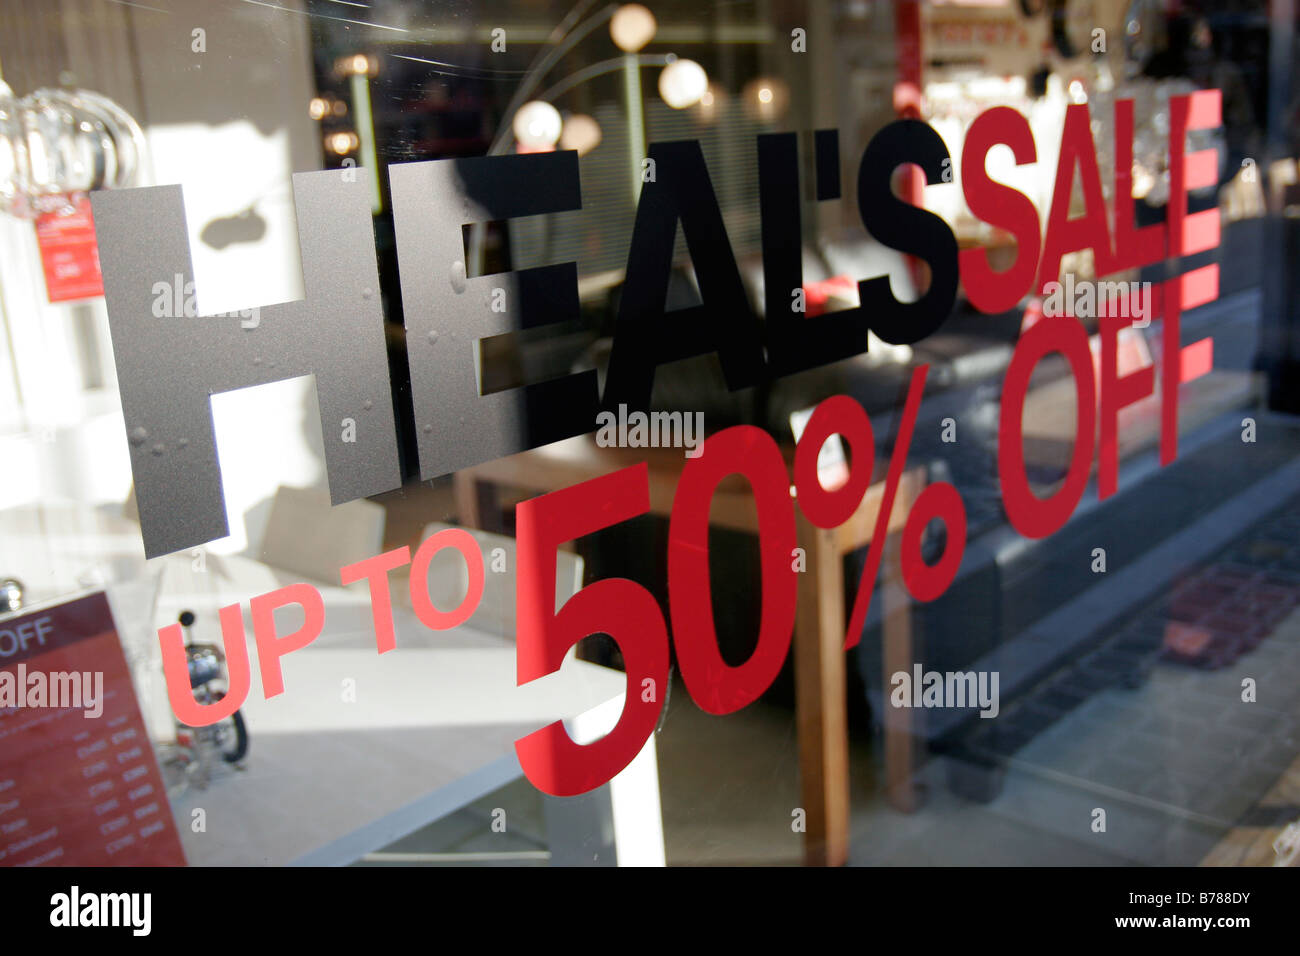 Sale sign in Heals shop on Tottenham Court Road - Stock Image